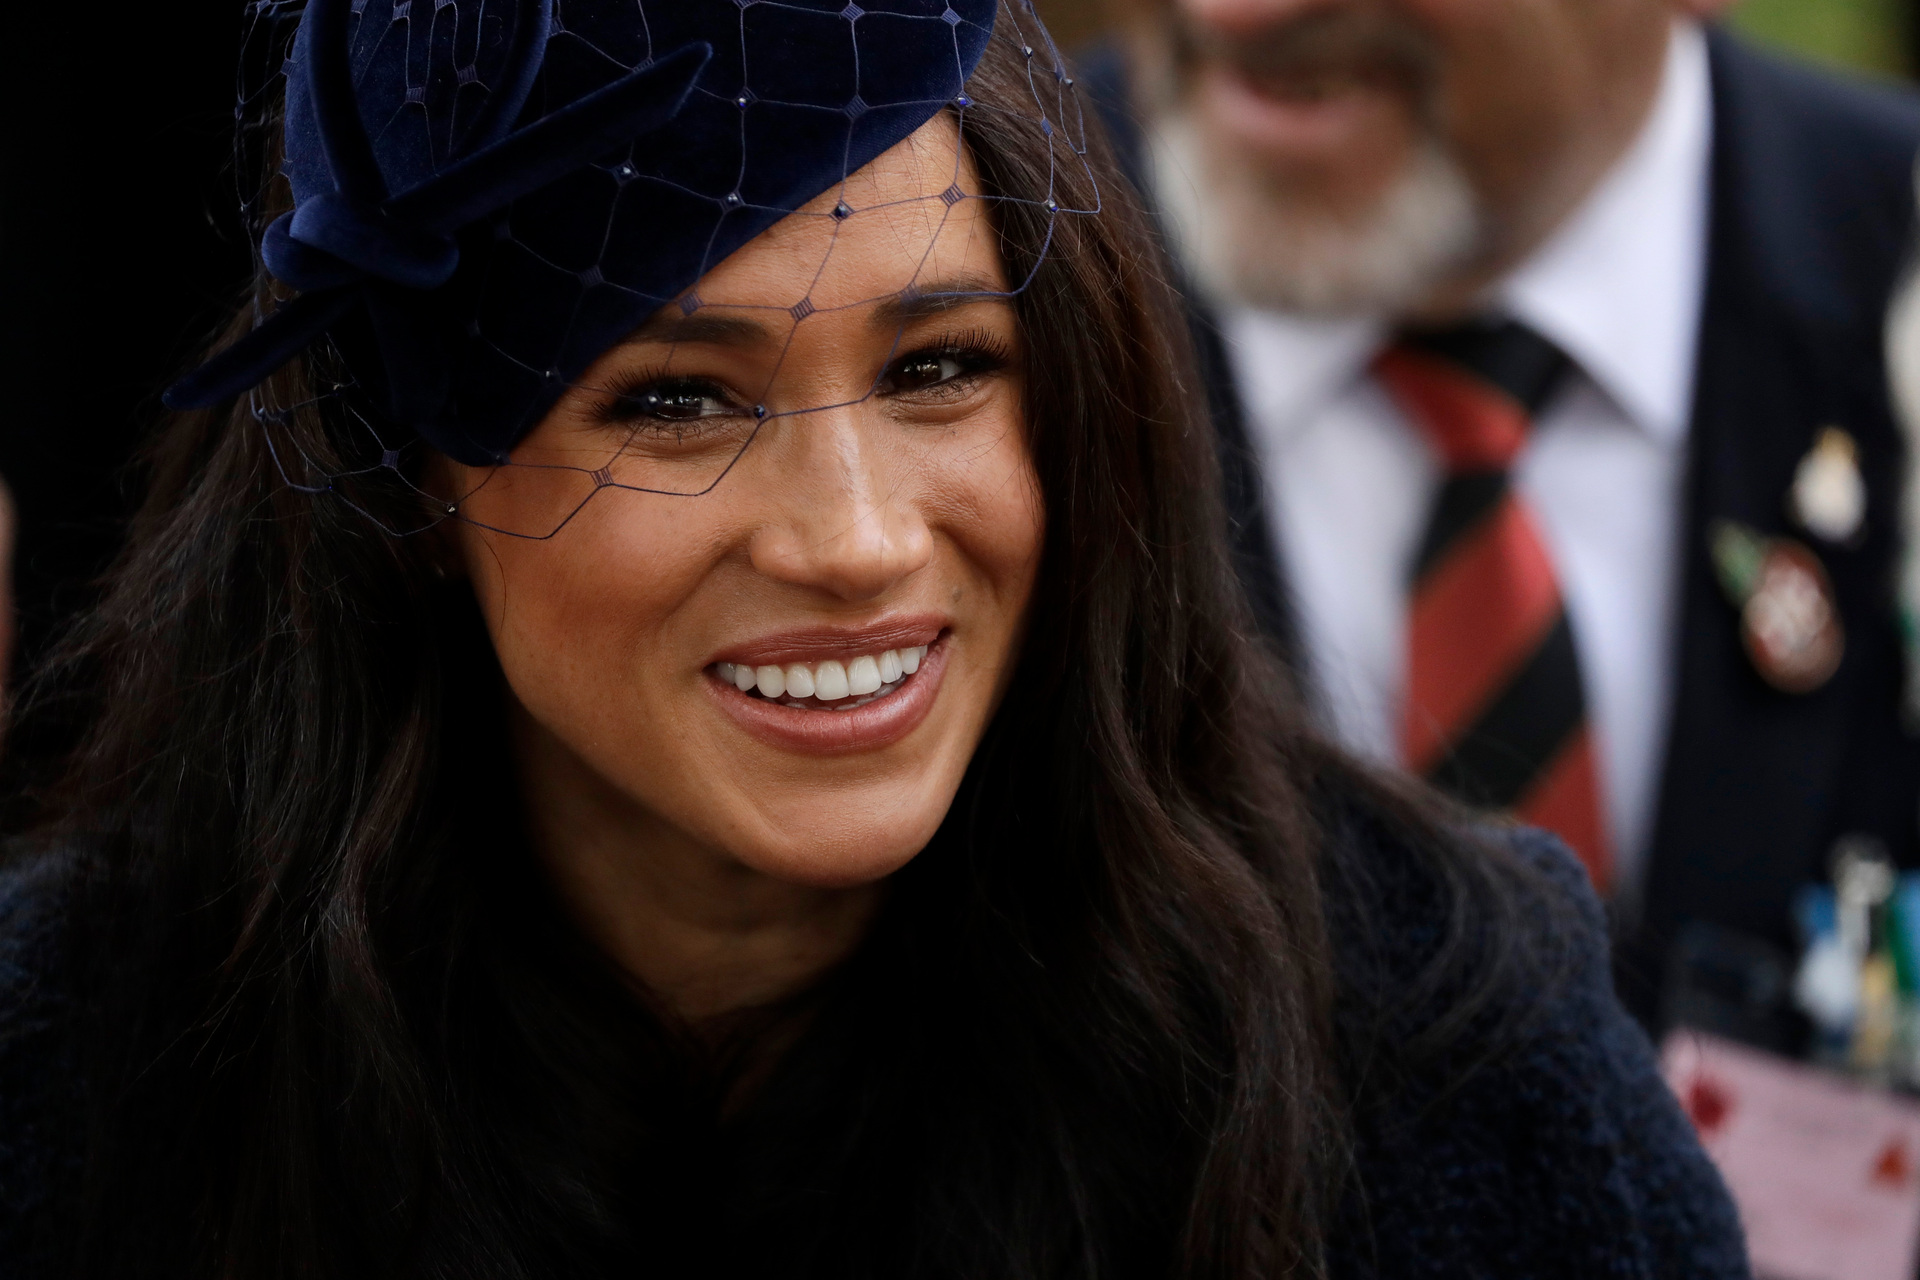 Royal tradition Meghan has rejected